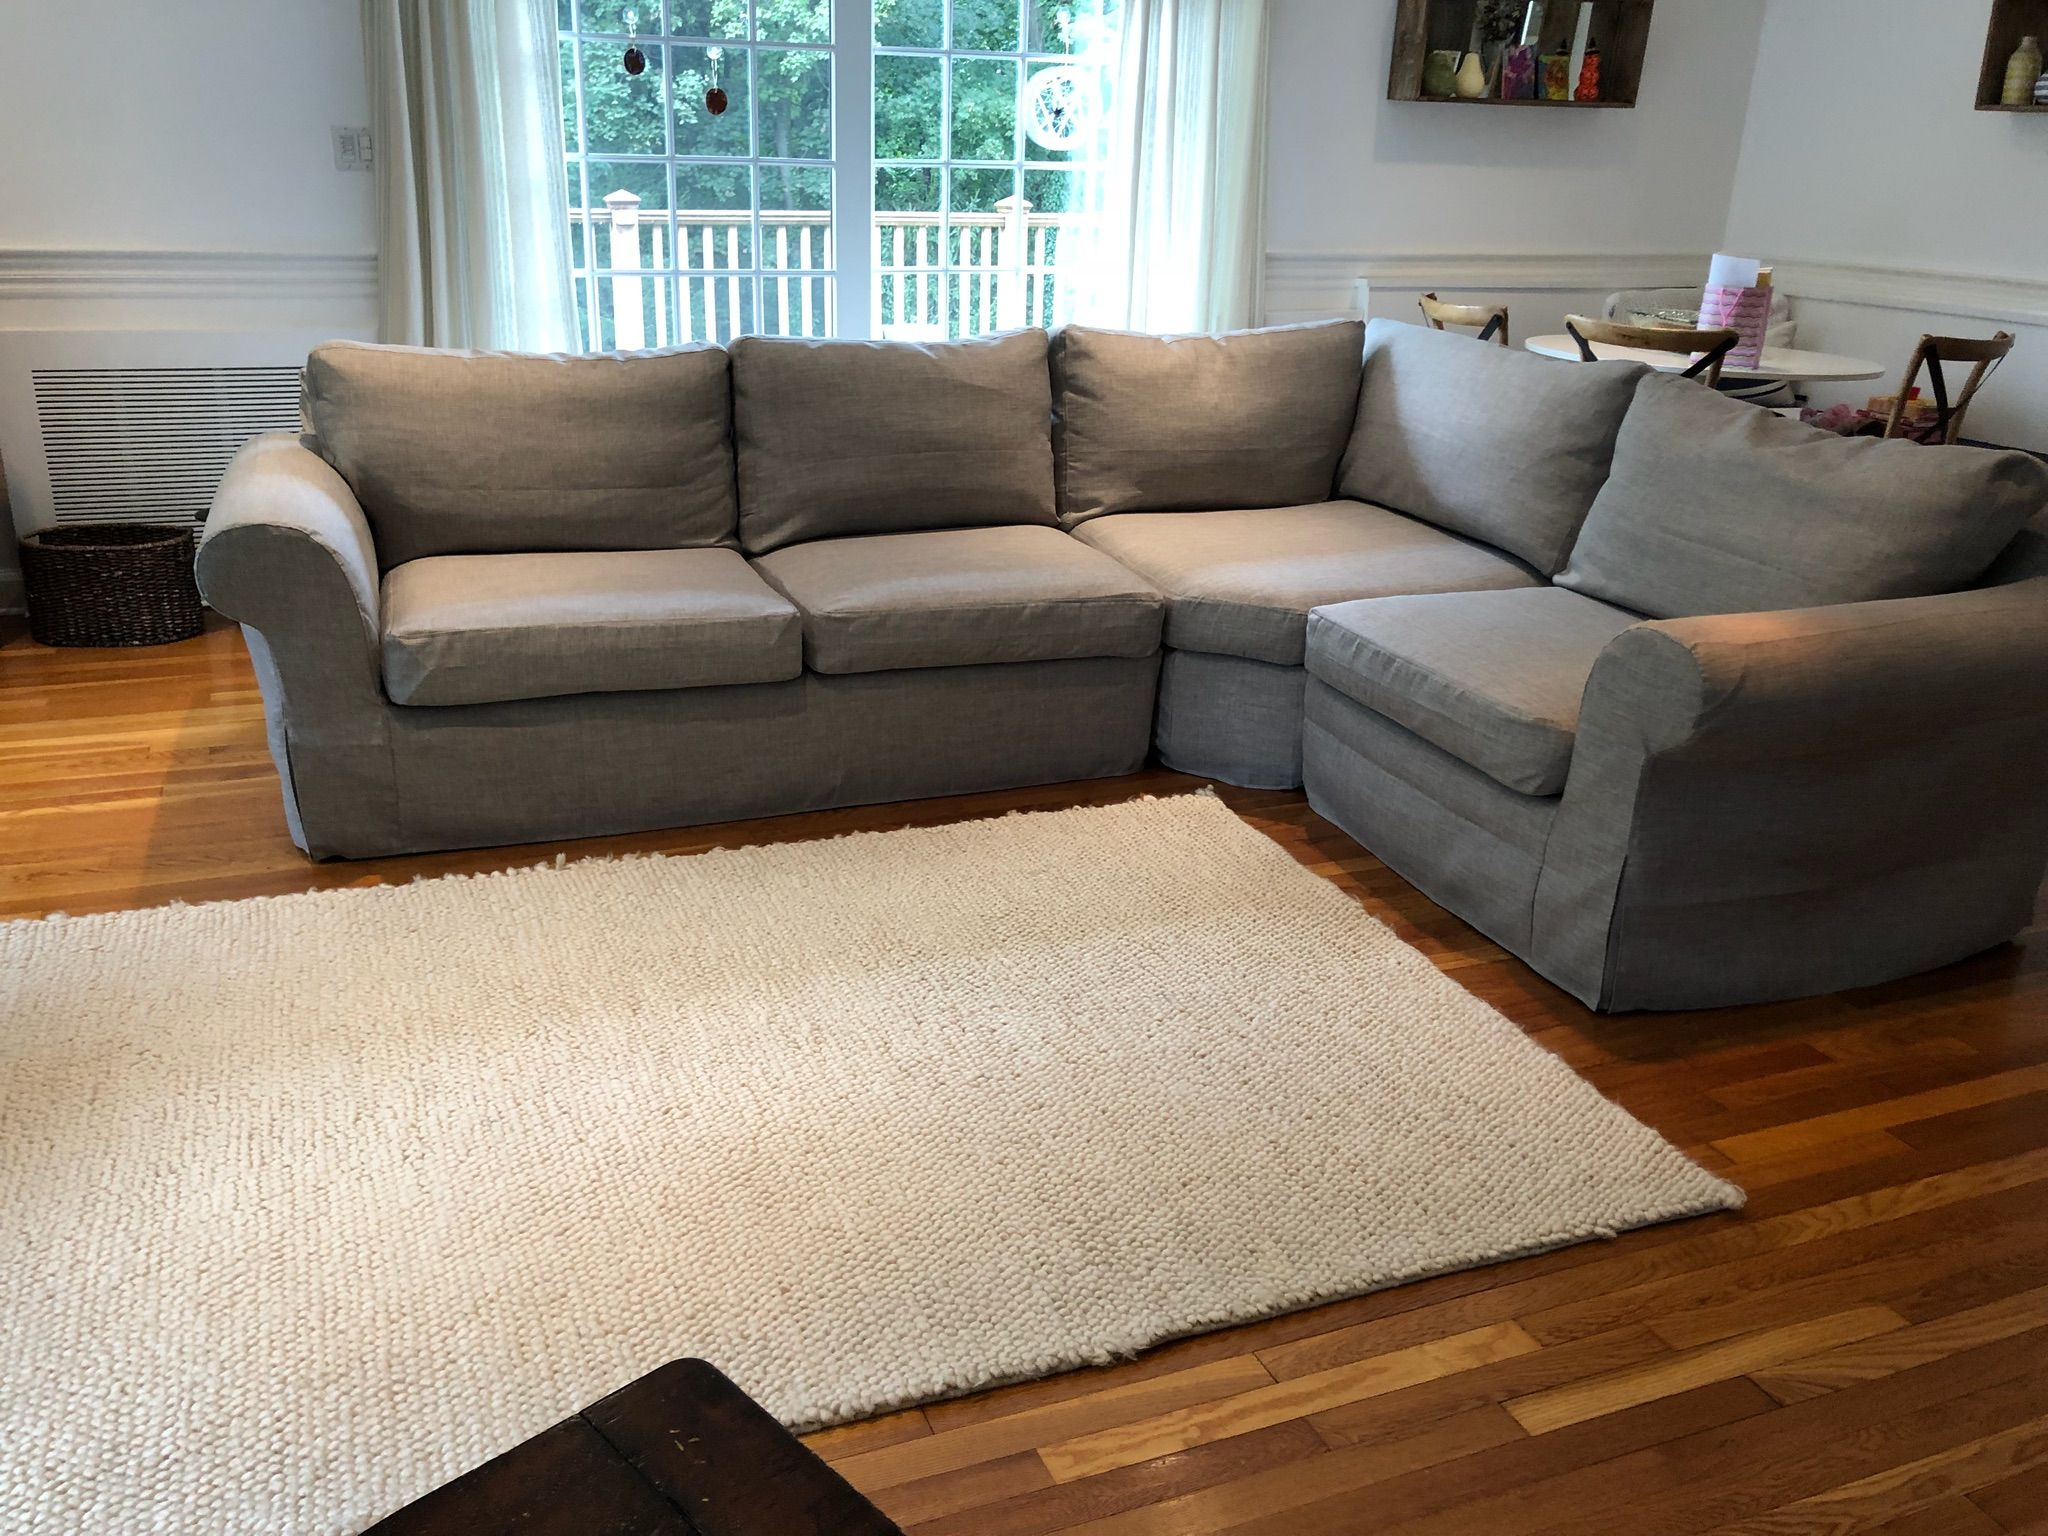 Pottery Barn Pearce Sectional Sofa In Kino Ash Couch Covers By